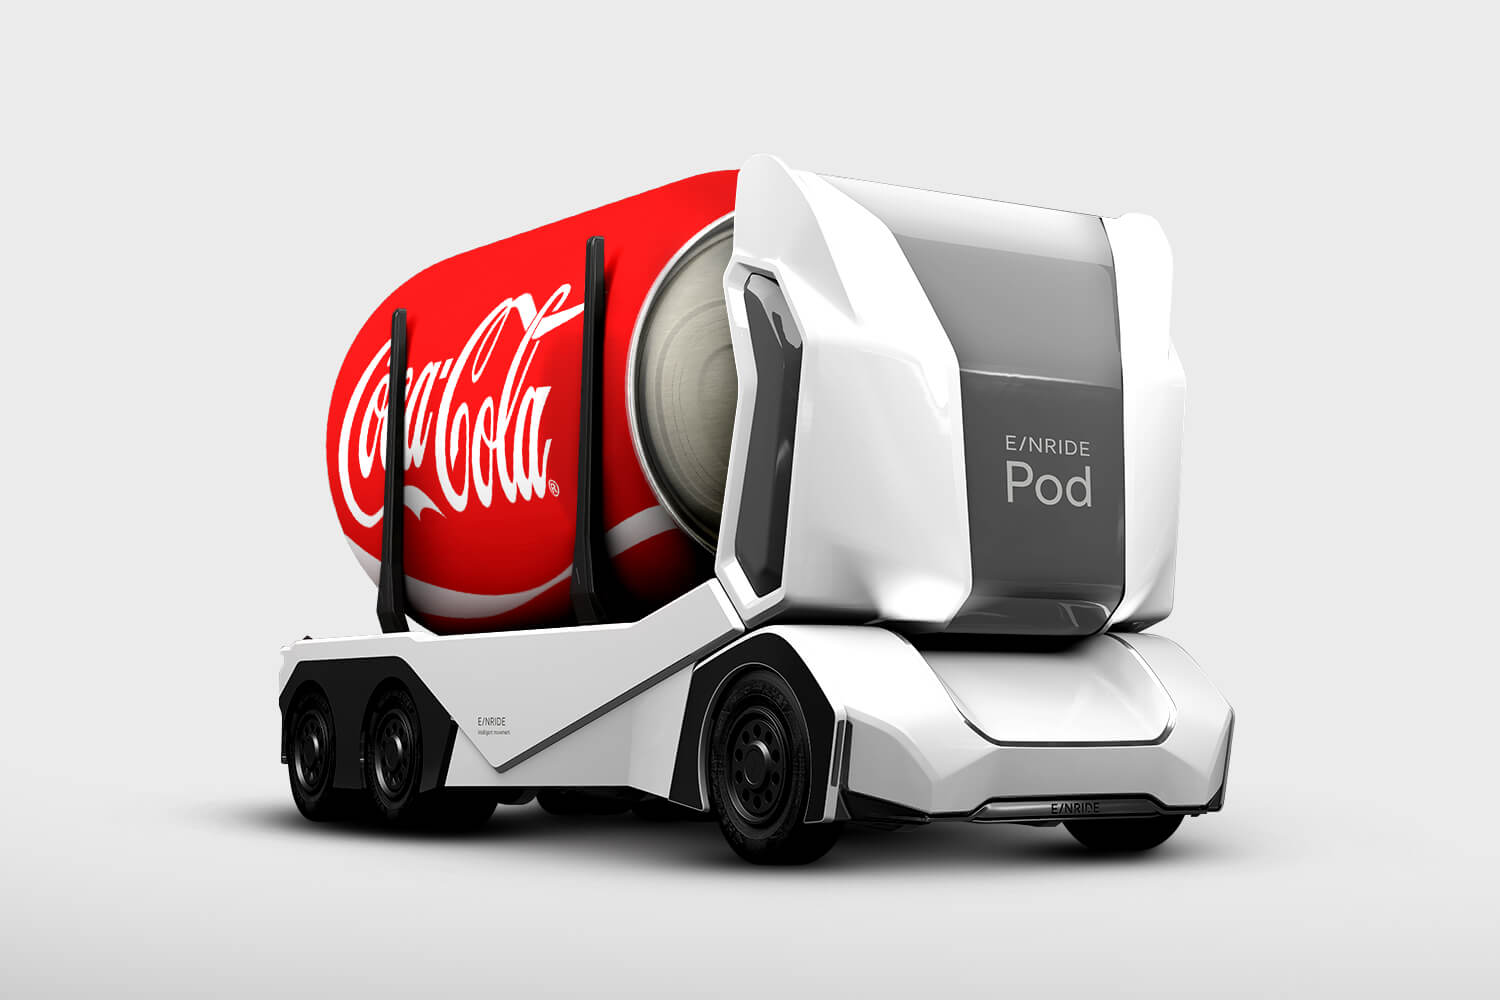 einride T-Pod carrying coca-cola